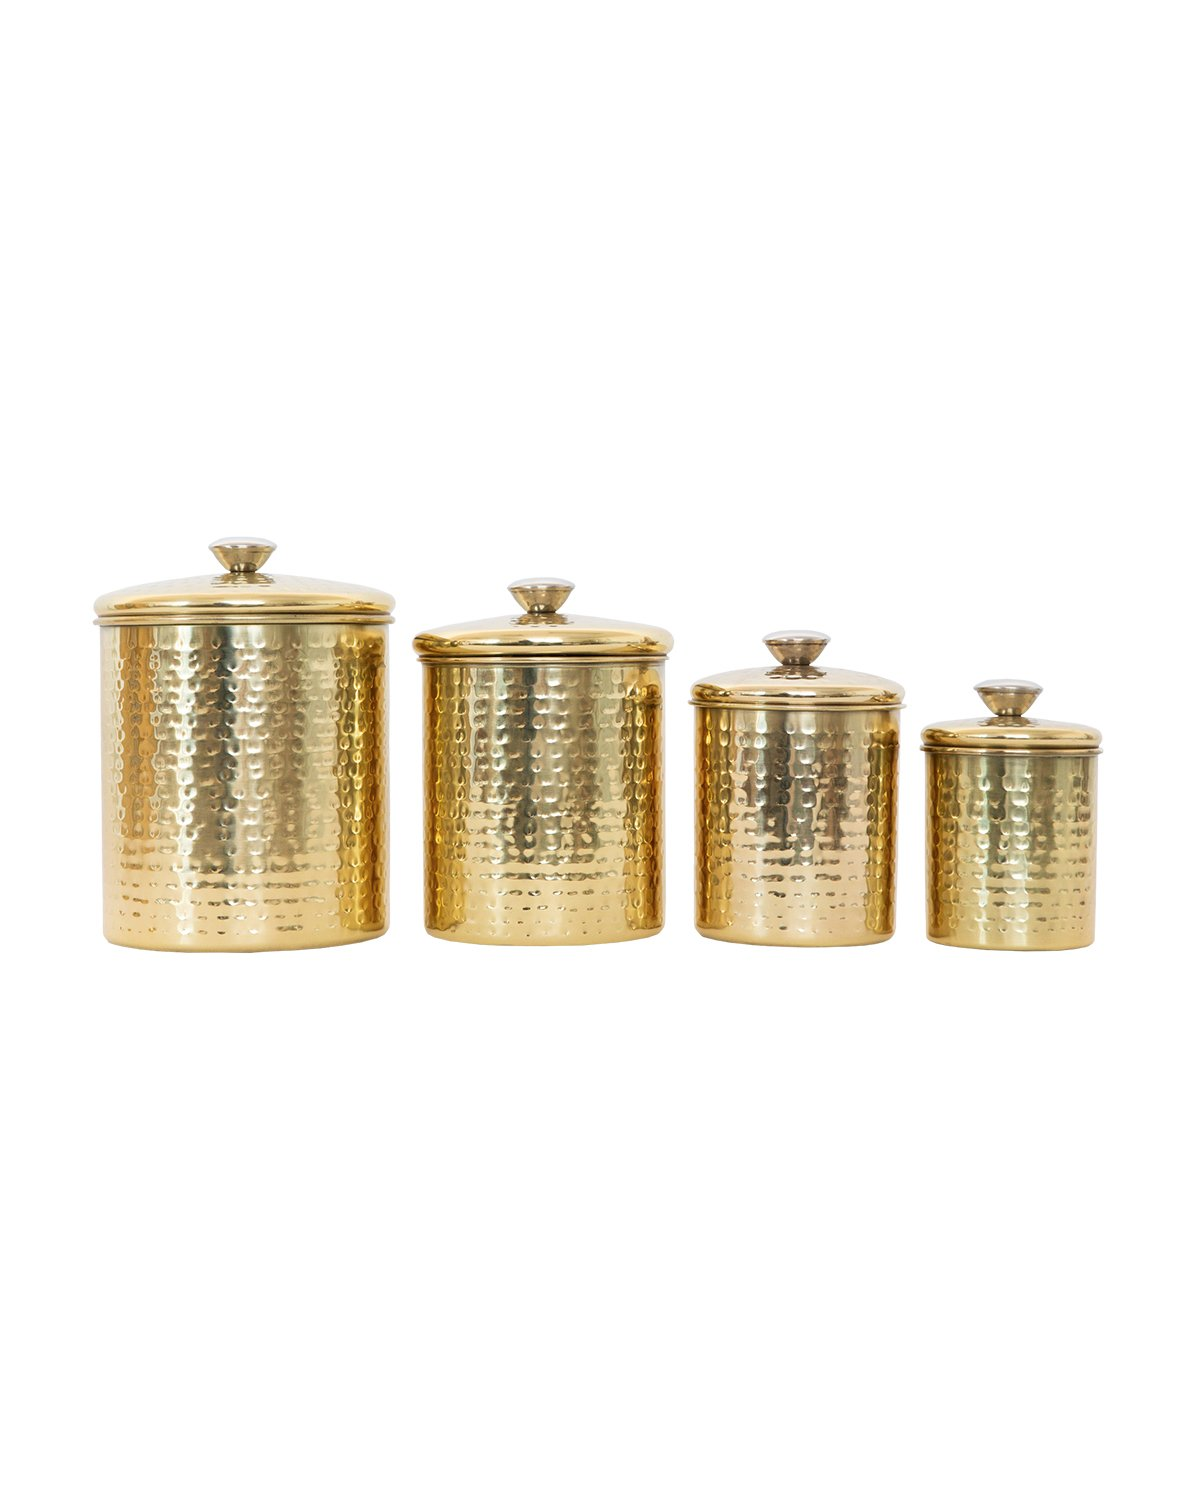 Hammered_Gold_Canisters.jpg